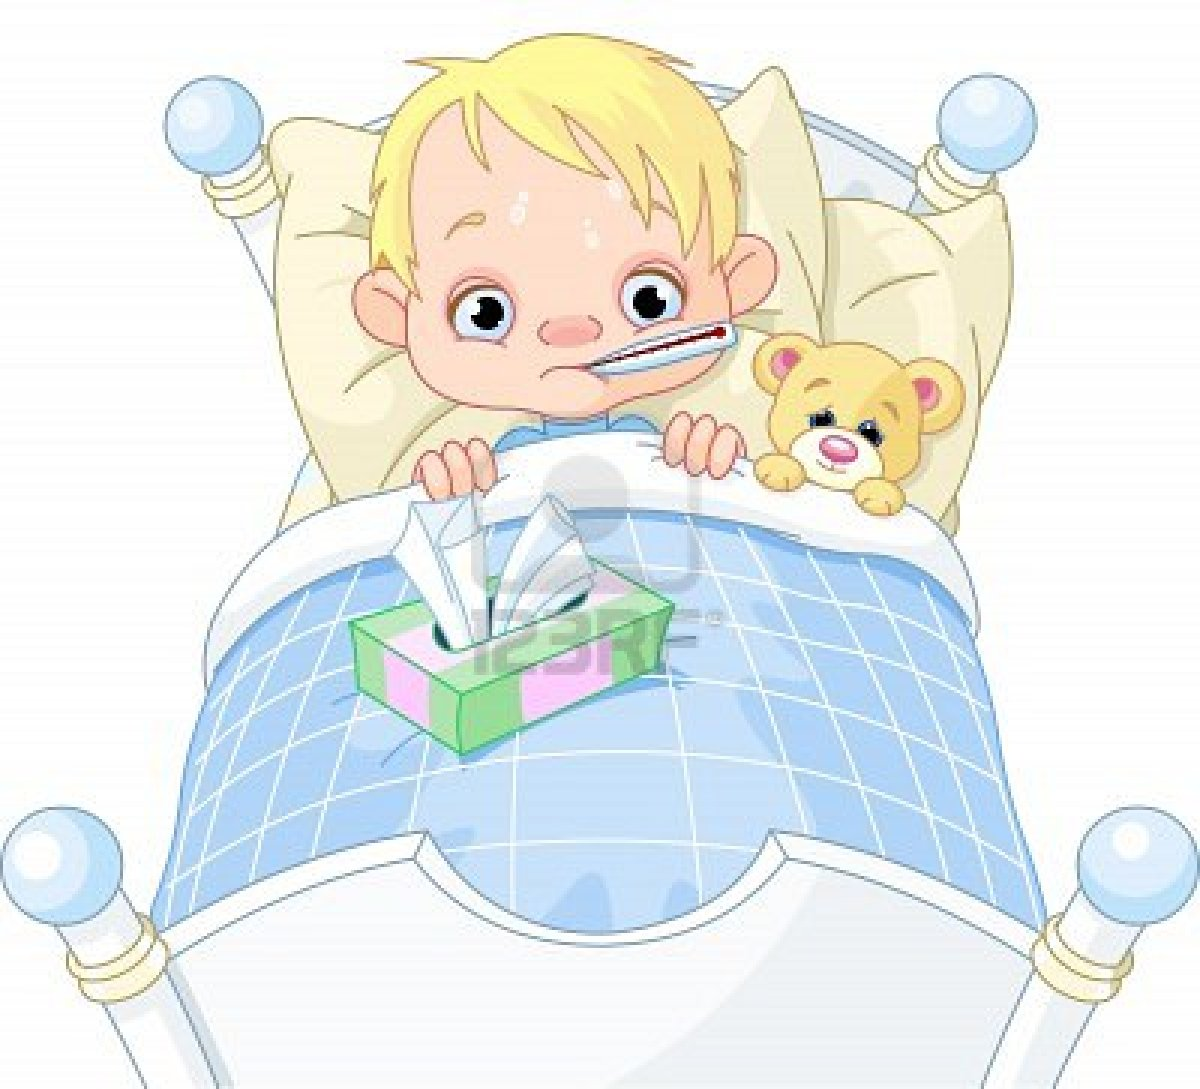 beb u00e9s dos amores  el blog picture of boy praying clipart little boy praying clipart